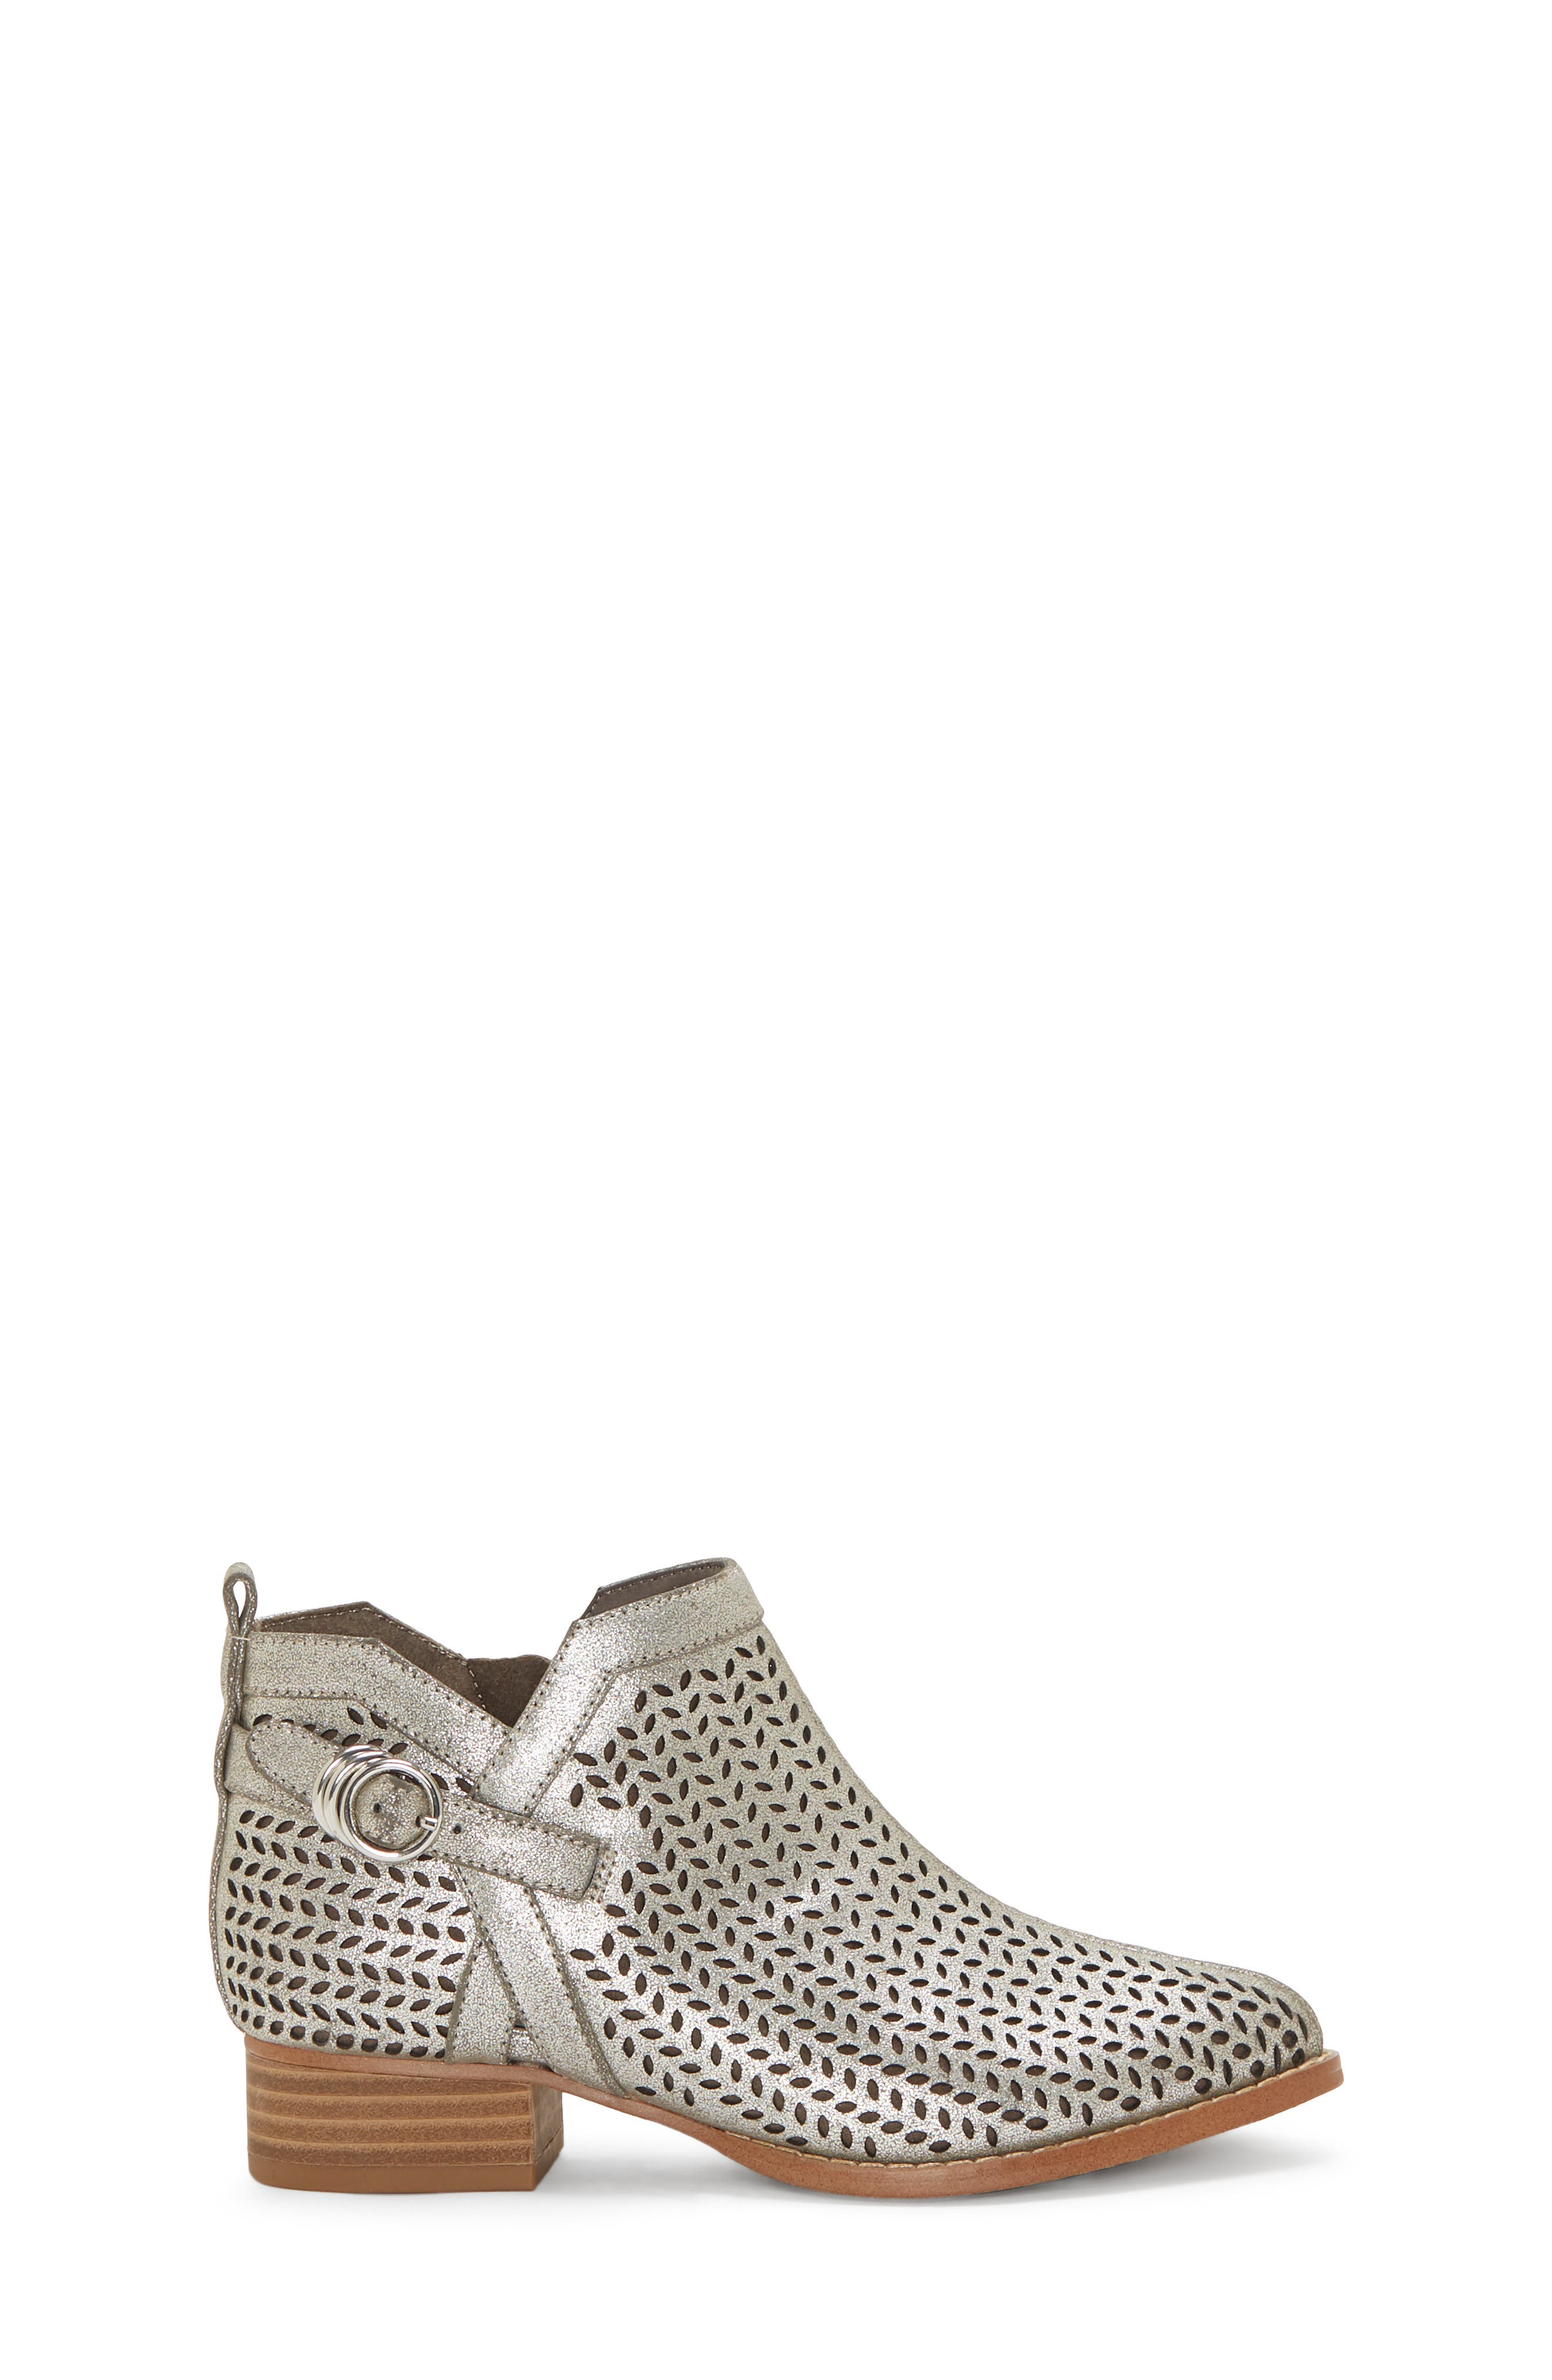 Campina Perforated Bootie,                             Alternate thumbnail 3, color,                             DARK SILVER/ TAUPE